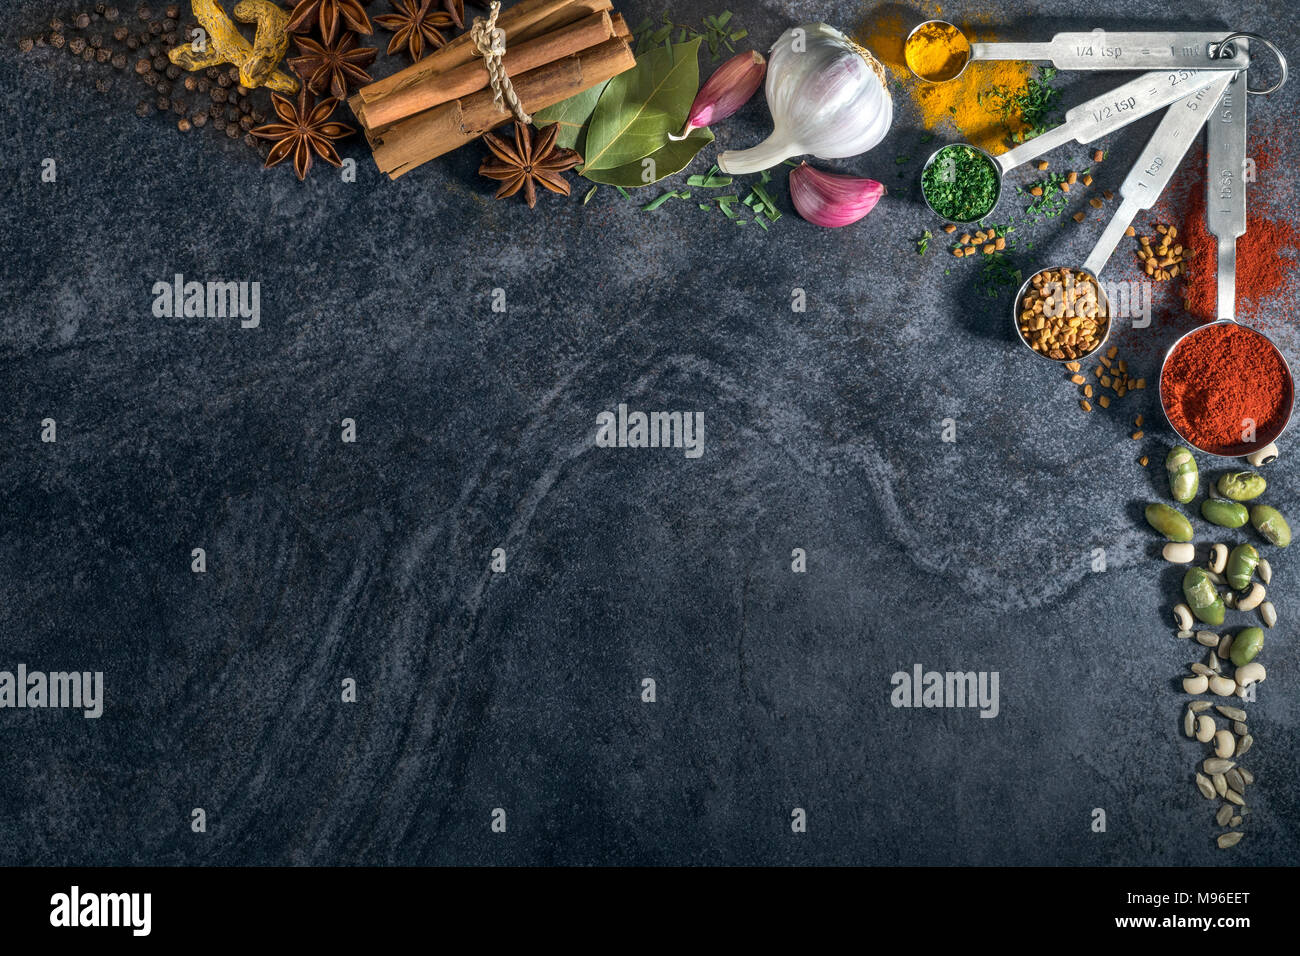 Herbs, spices, pulses - Border with space for text - Stock Image